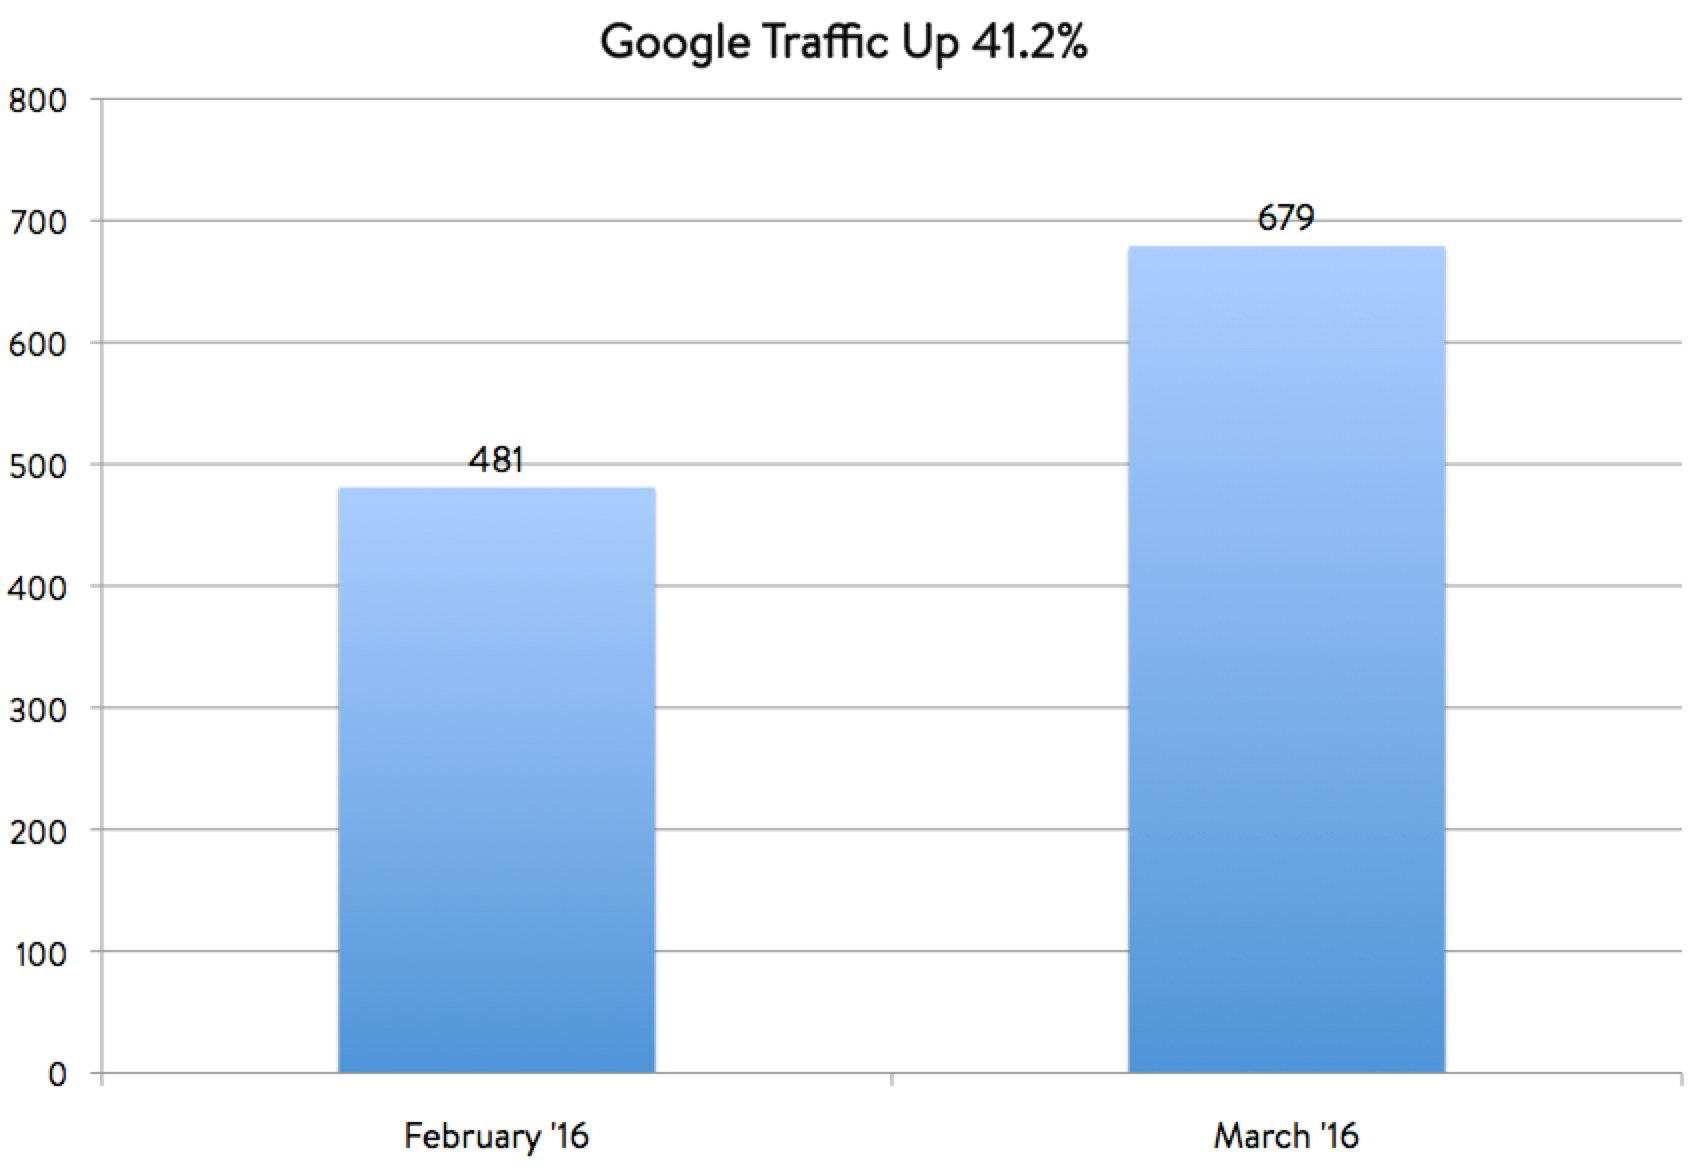 Schema.org Job Description Traffic SEO